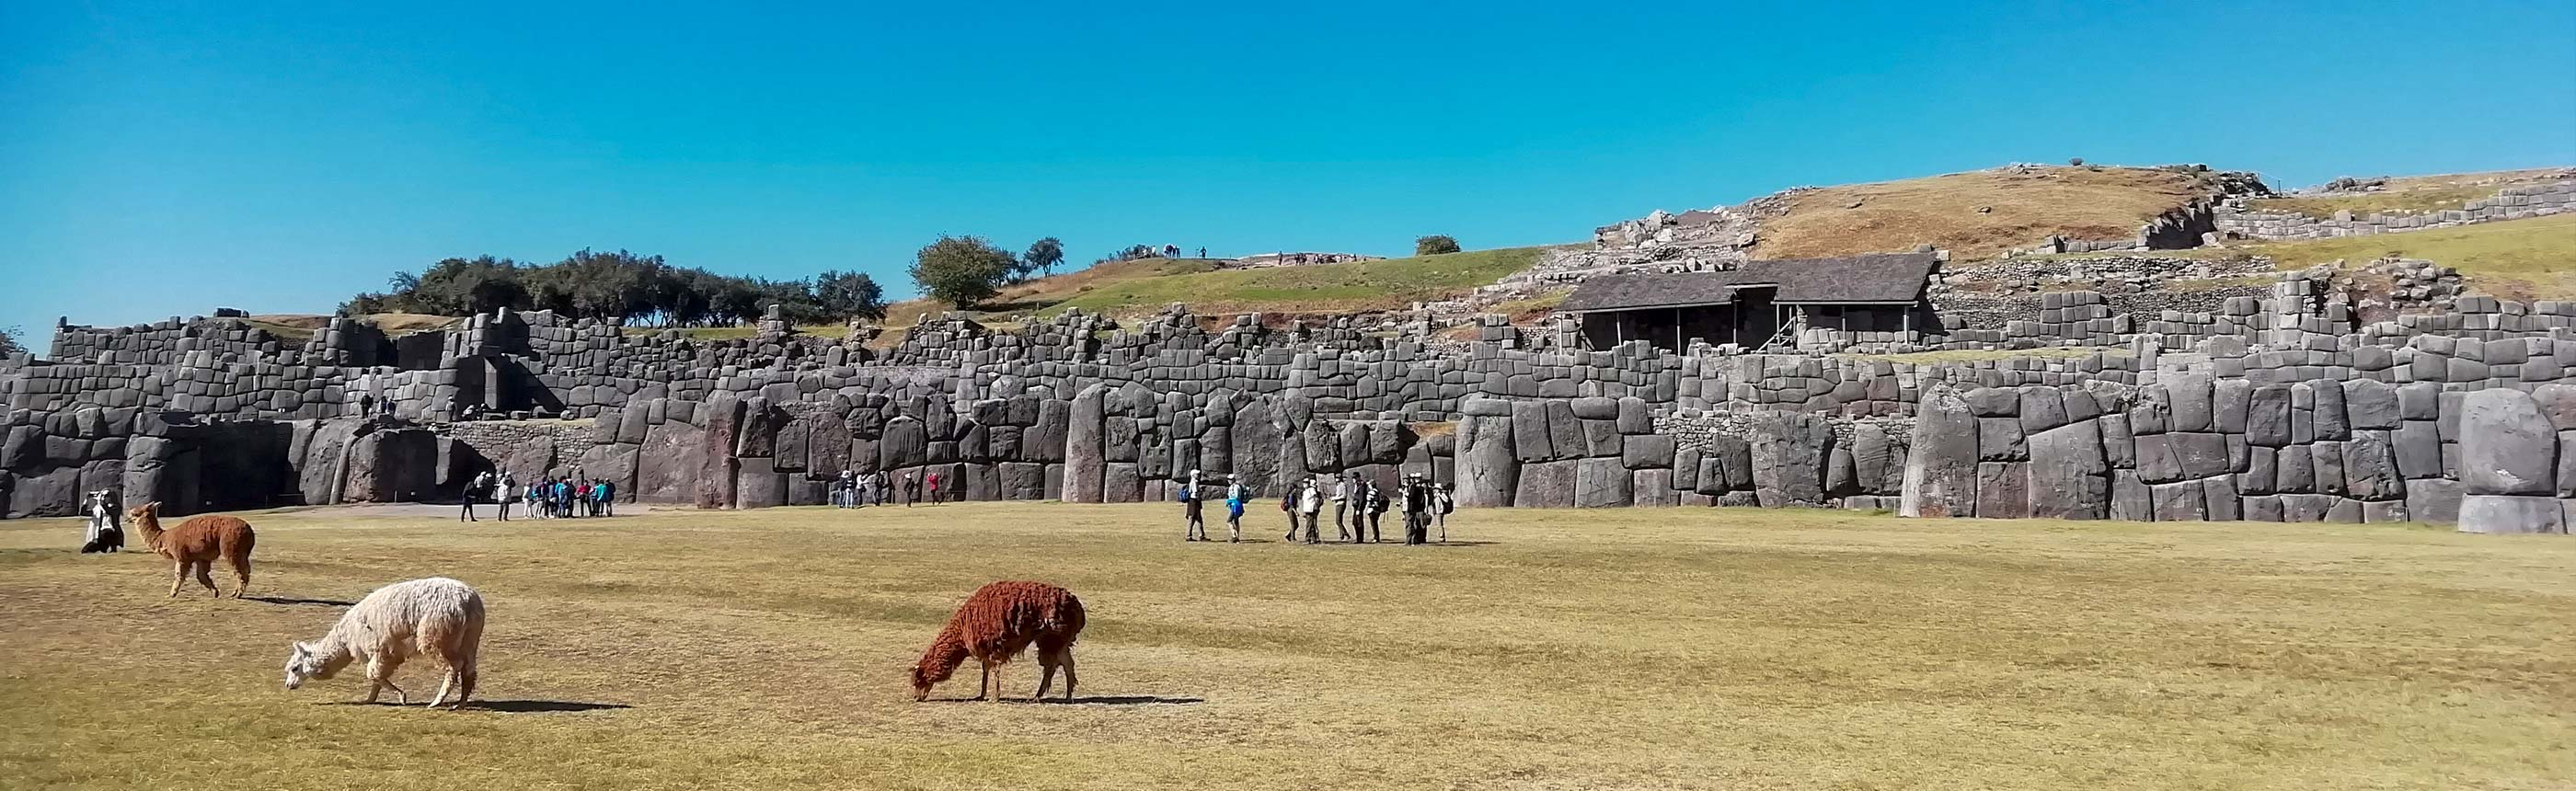 Fantastic 3-Day Tour of Cusco, Sacred Valley, and Machu Picchu